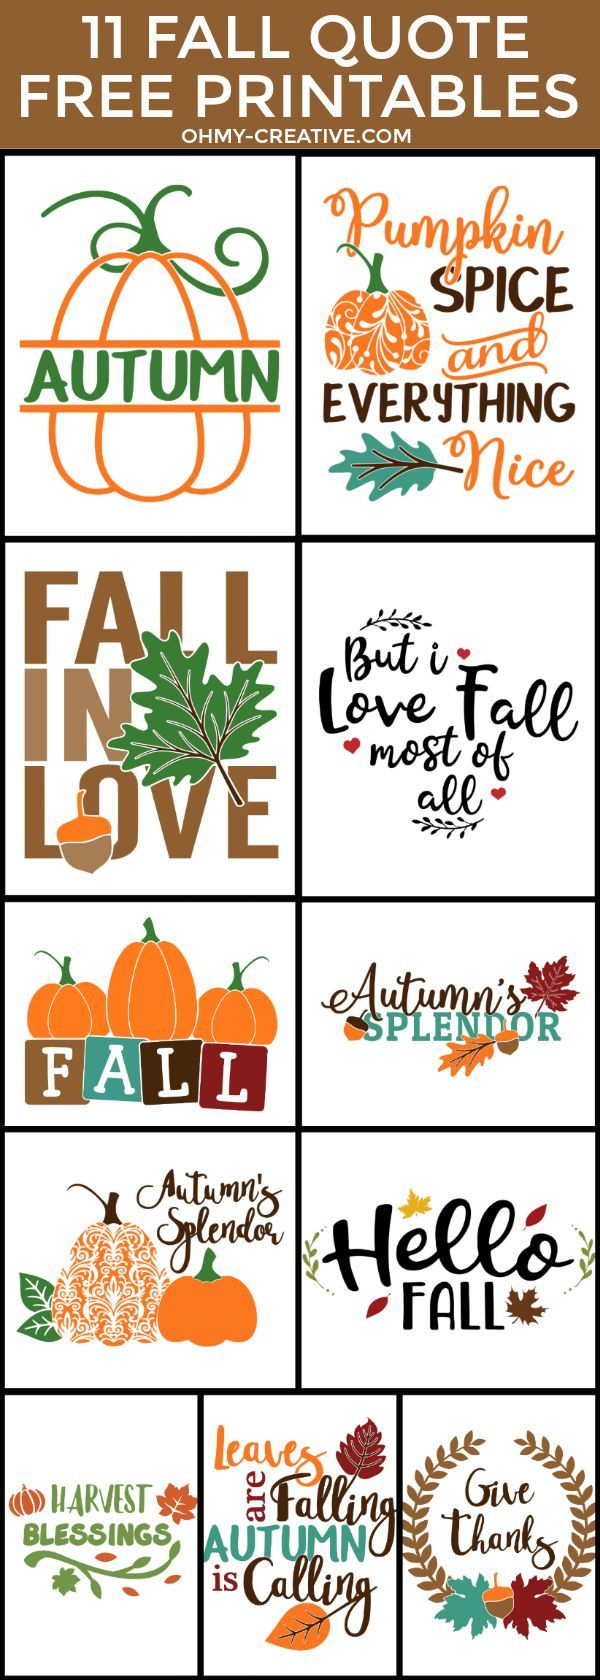 Fall Quotes Free Printables - These autumn sayings are perfect printables for adding fall decor to the home. Frameable Fall Quotes to display throughout!